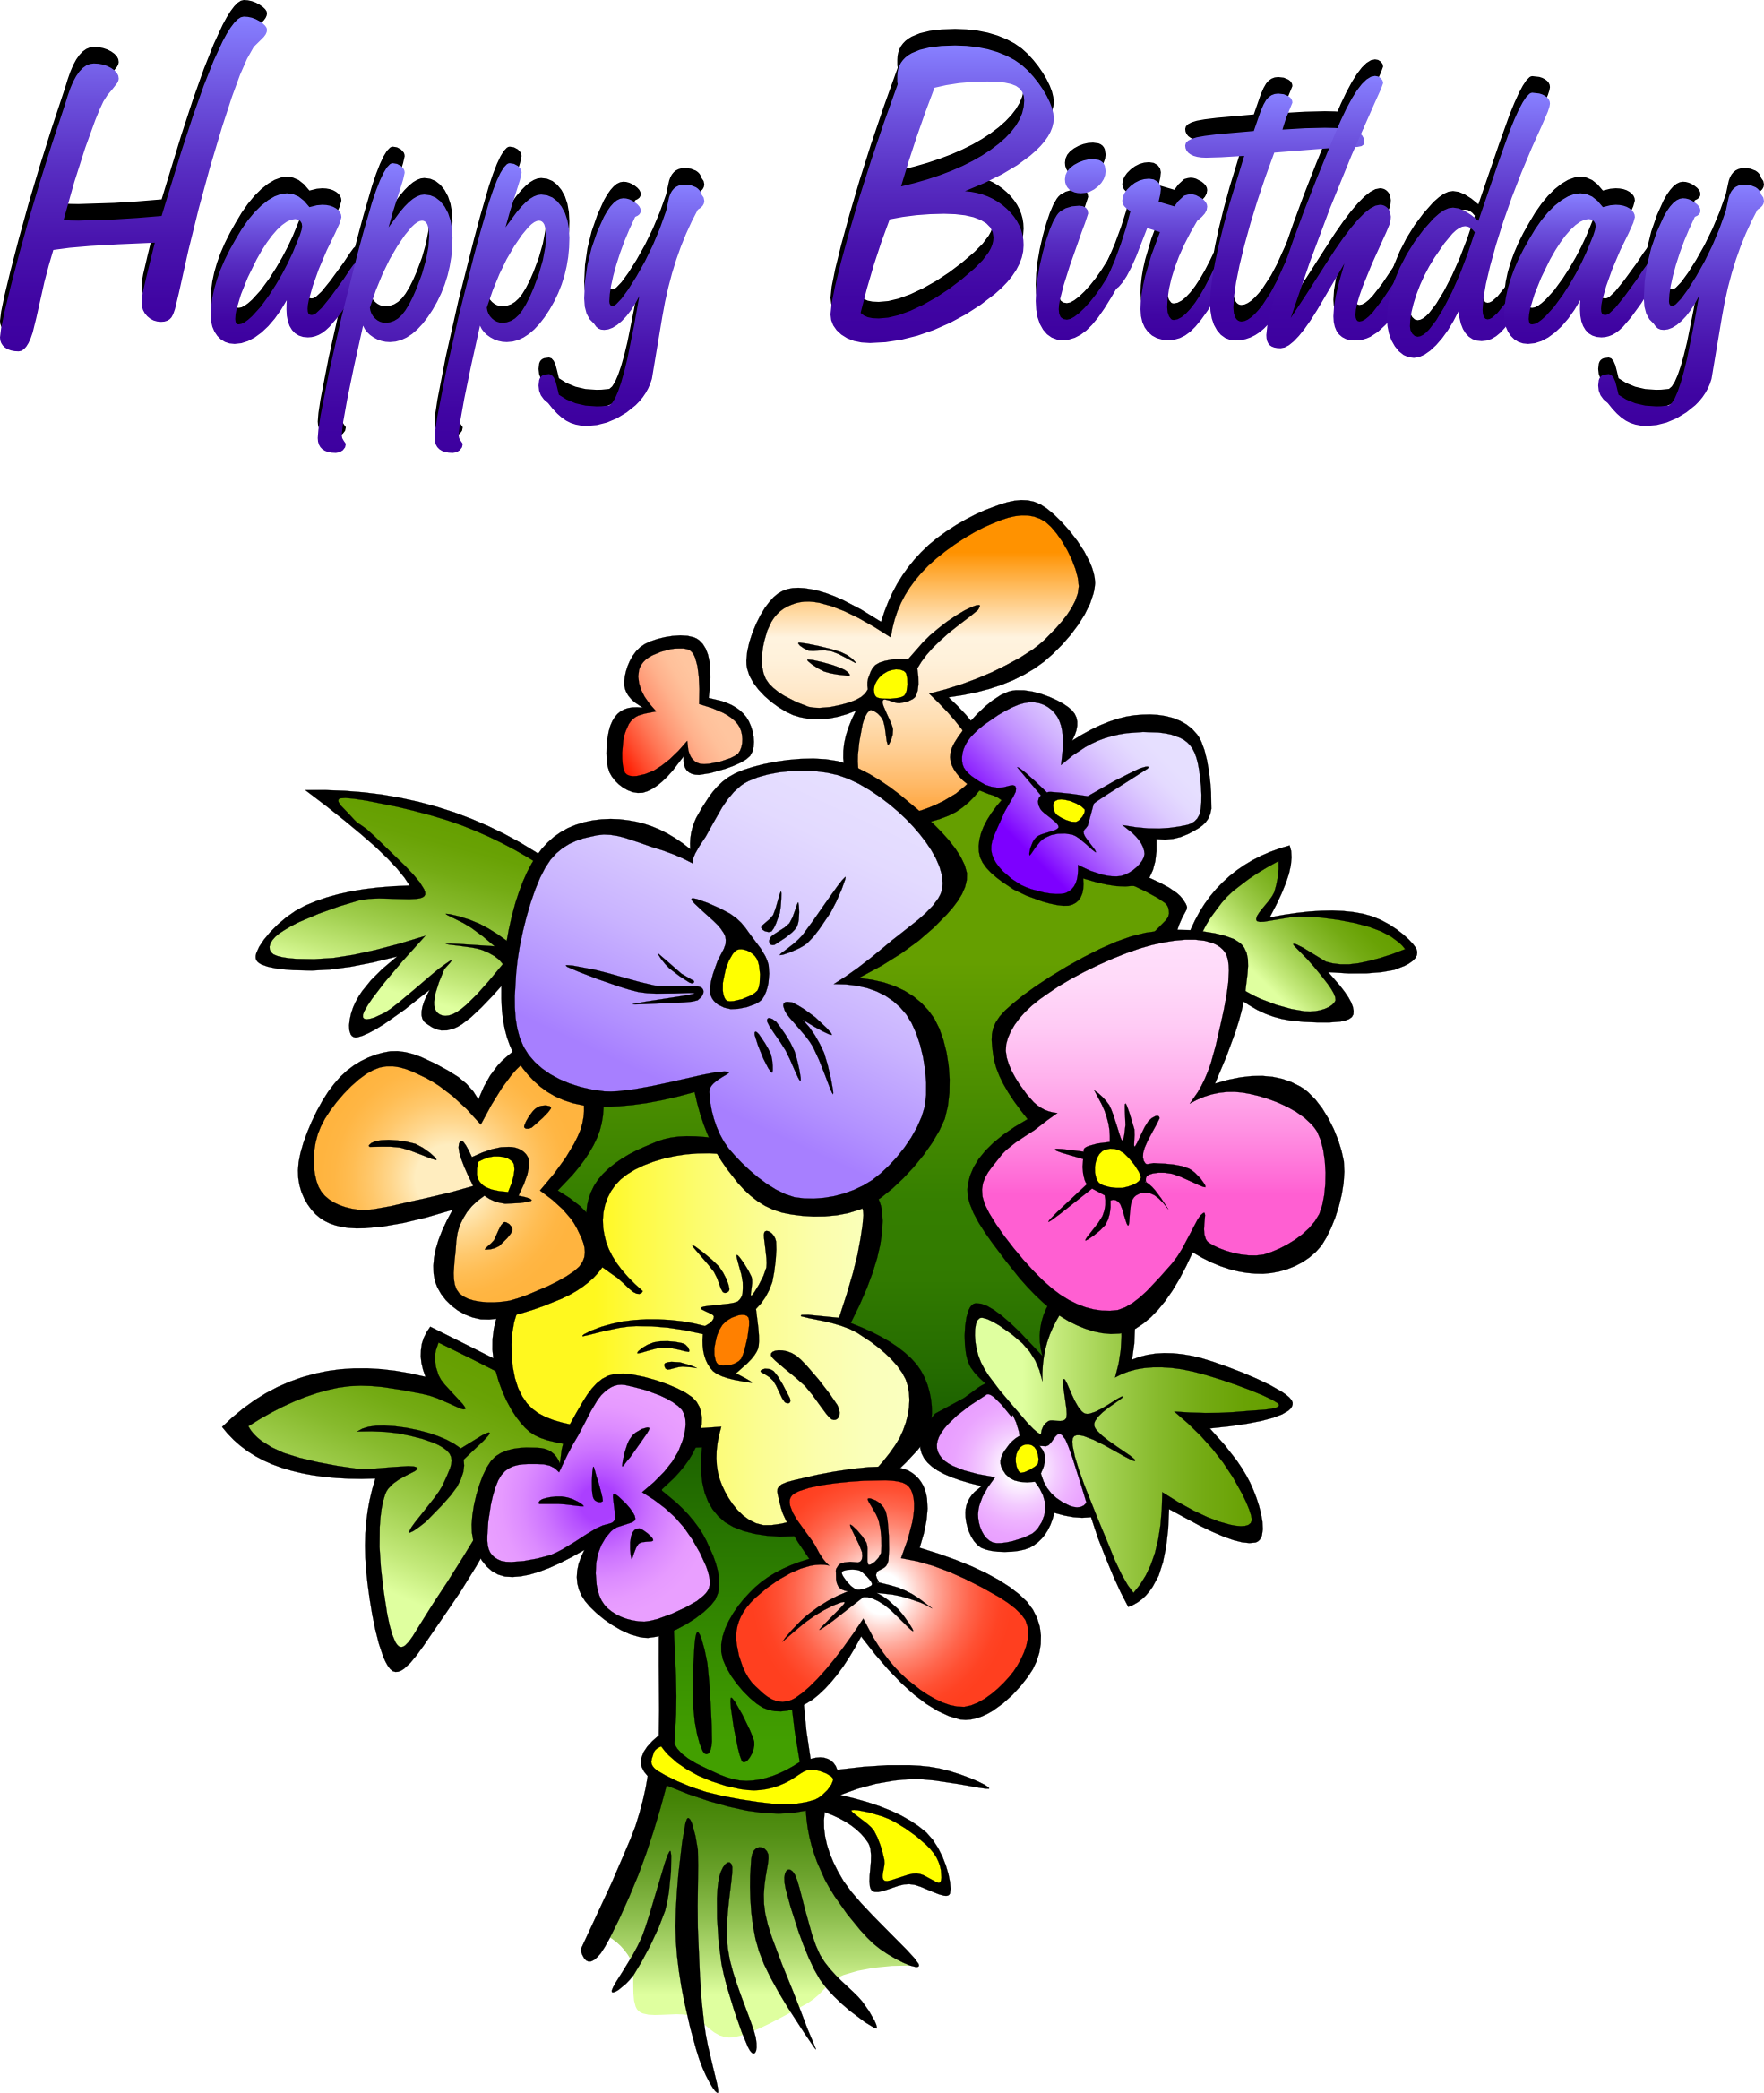 Birthday Clip Art And Free Birthday Graphics: Clipart Panda - Free Clipart Images